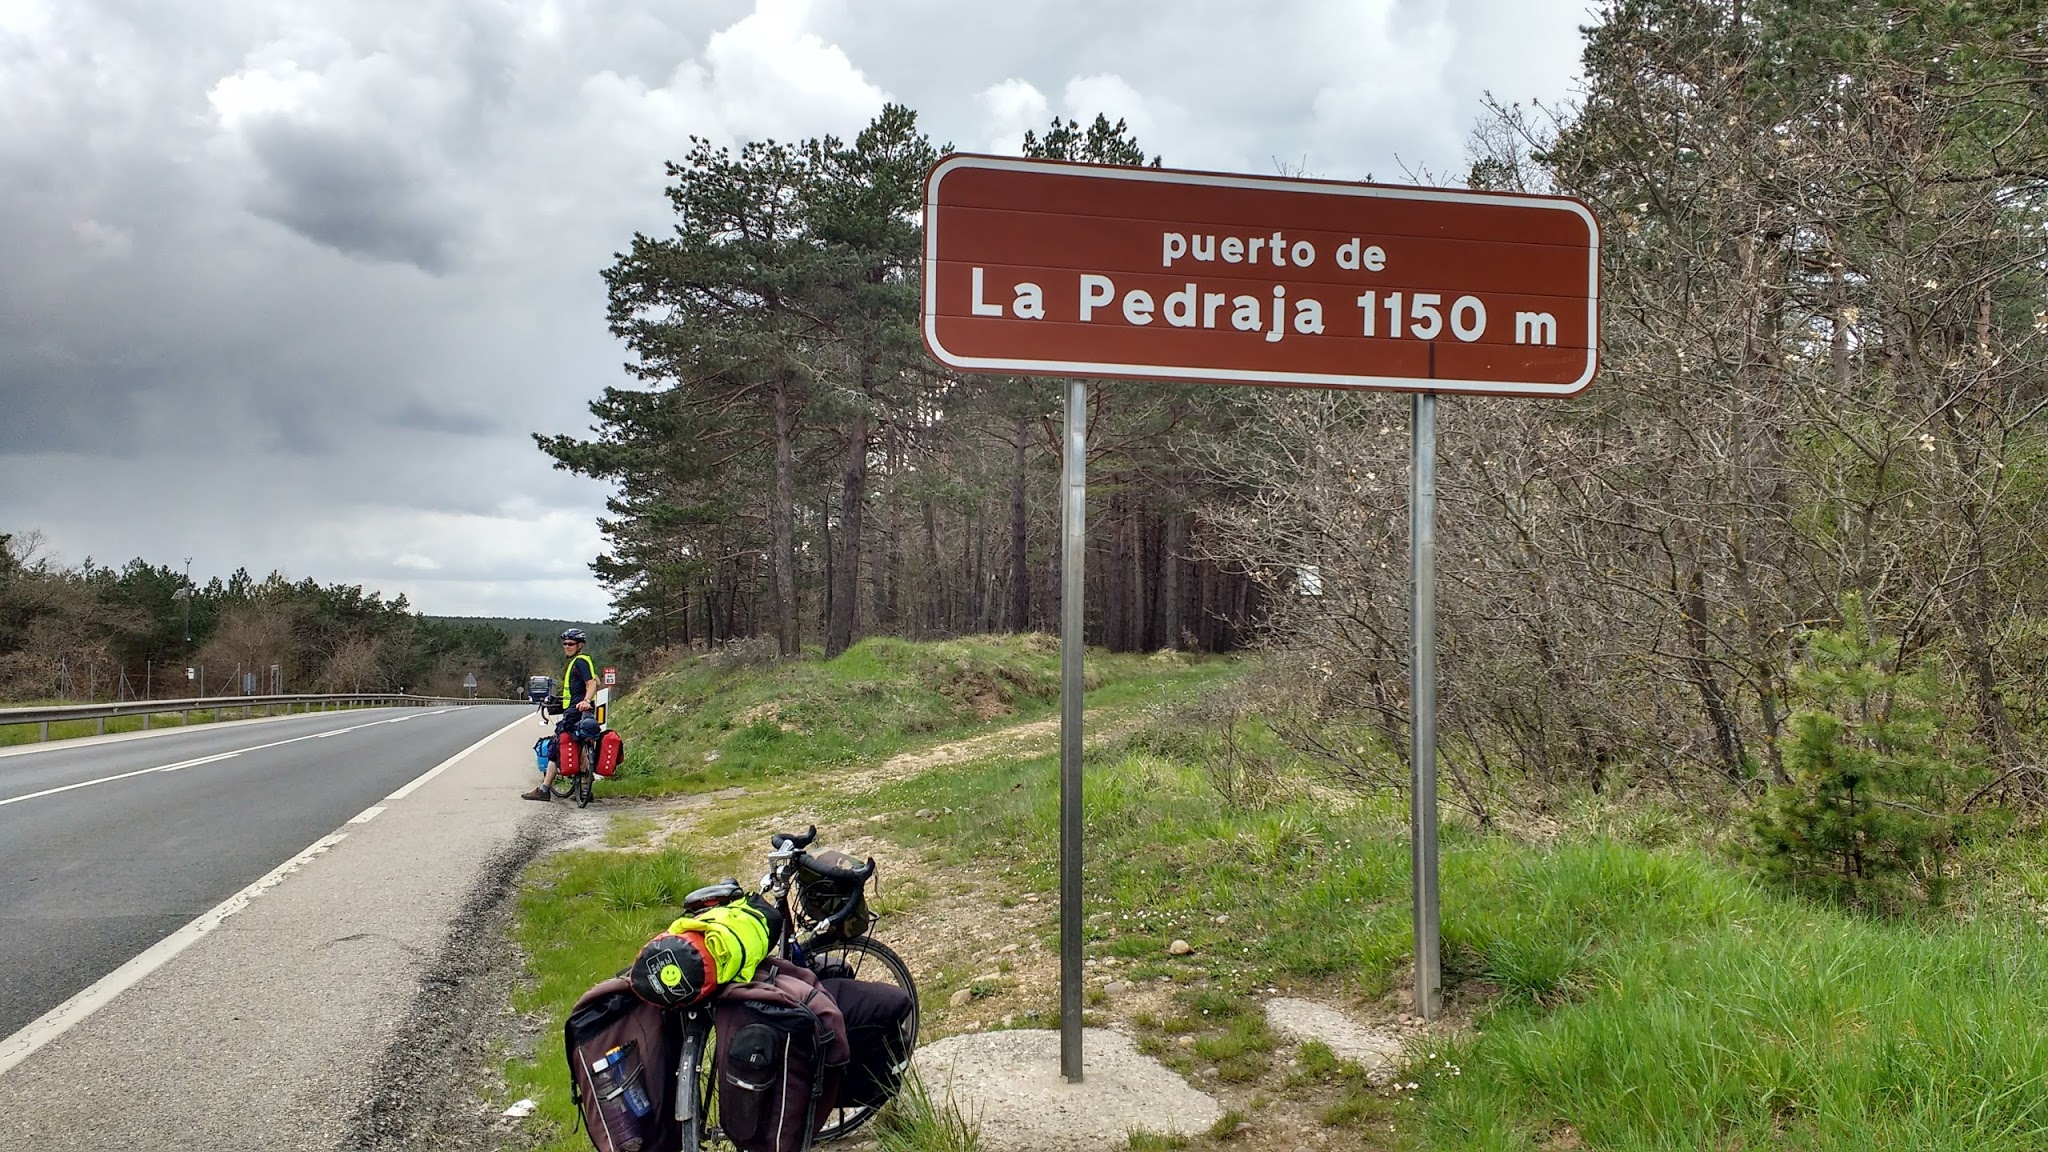 On the hill to Burgos